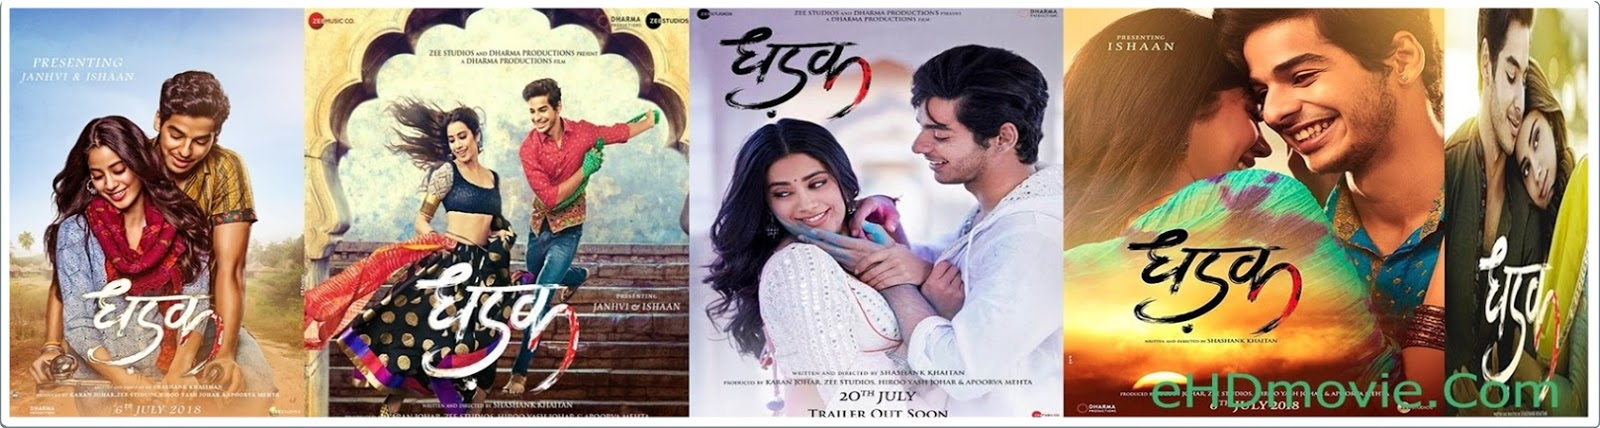 Dhadak 2018 Full Movie Hindi 1080p - 720p - HEVC - 480p ORG WEB-DL 400MB - 650MB - 1.1GB - 2GB ESubs Free Download